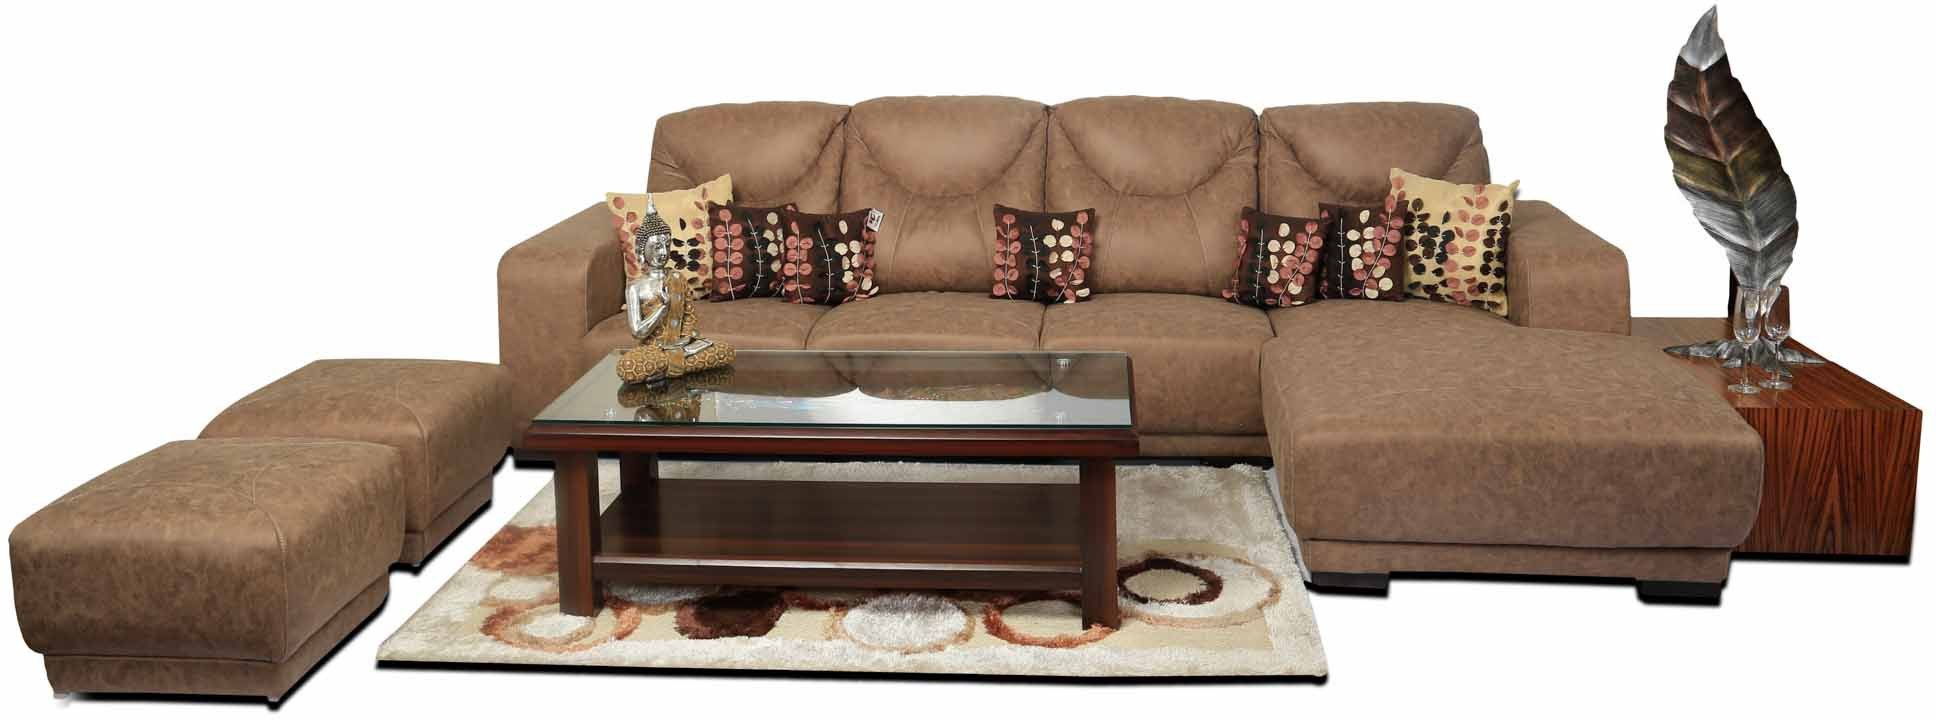 View Home City Fabric 7 Seater Sectional(Finish Color - Brown) Furniture (Home City)